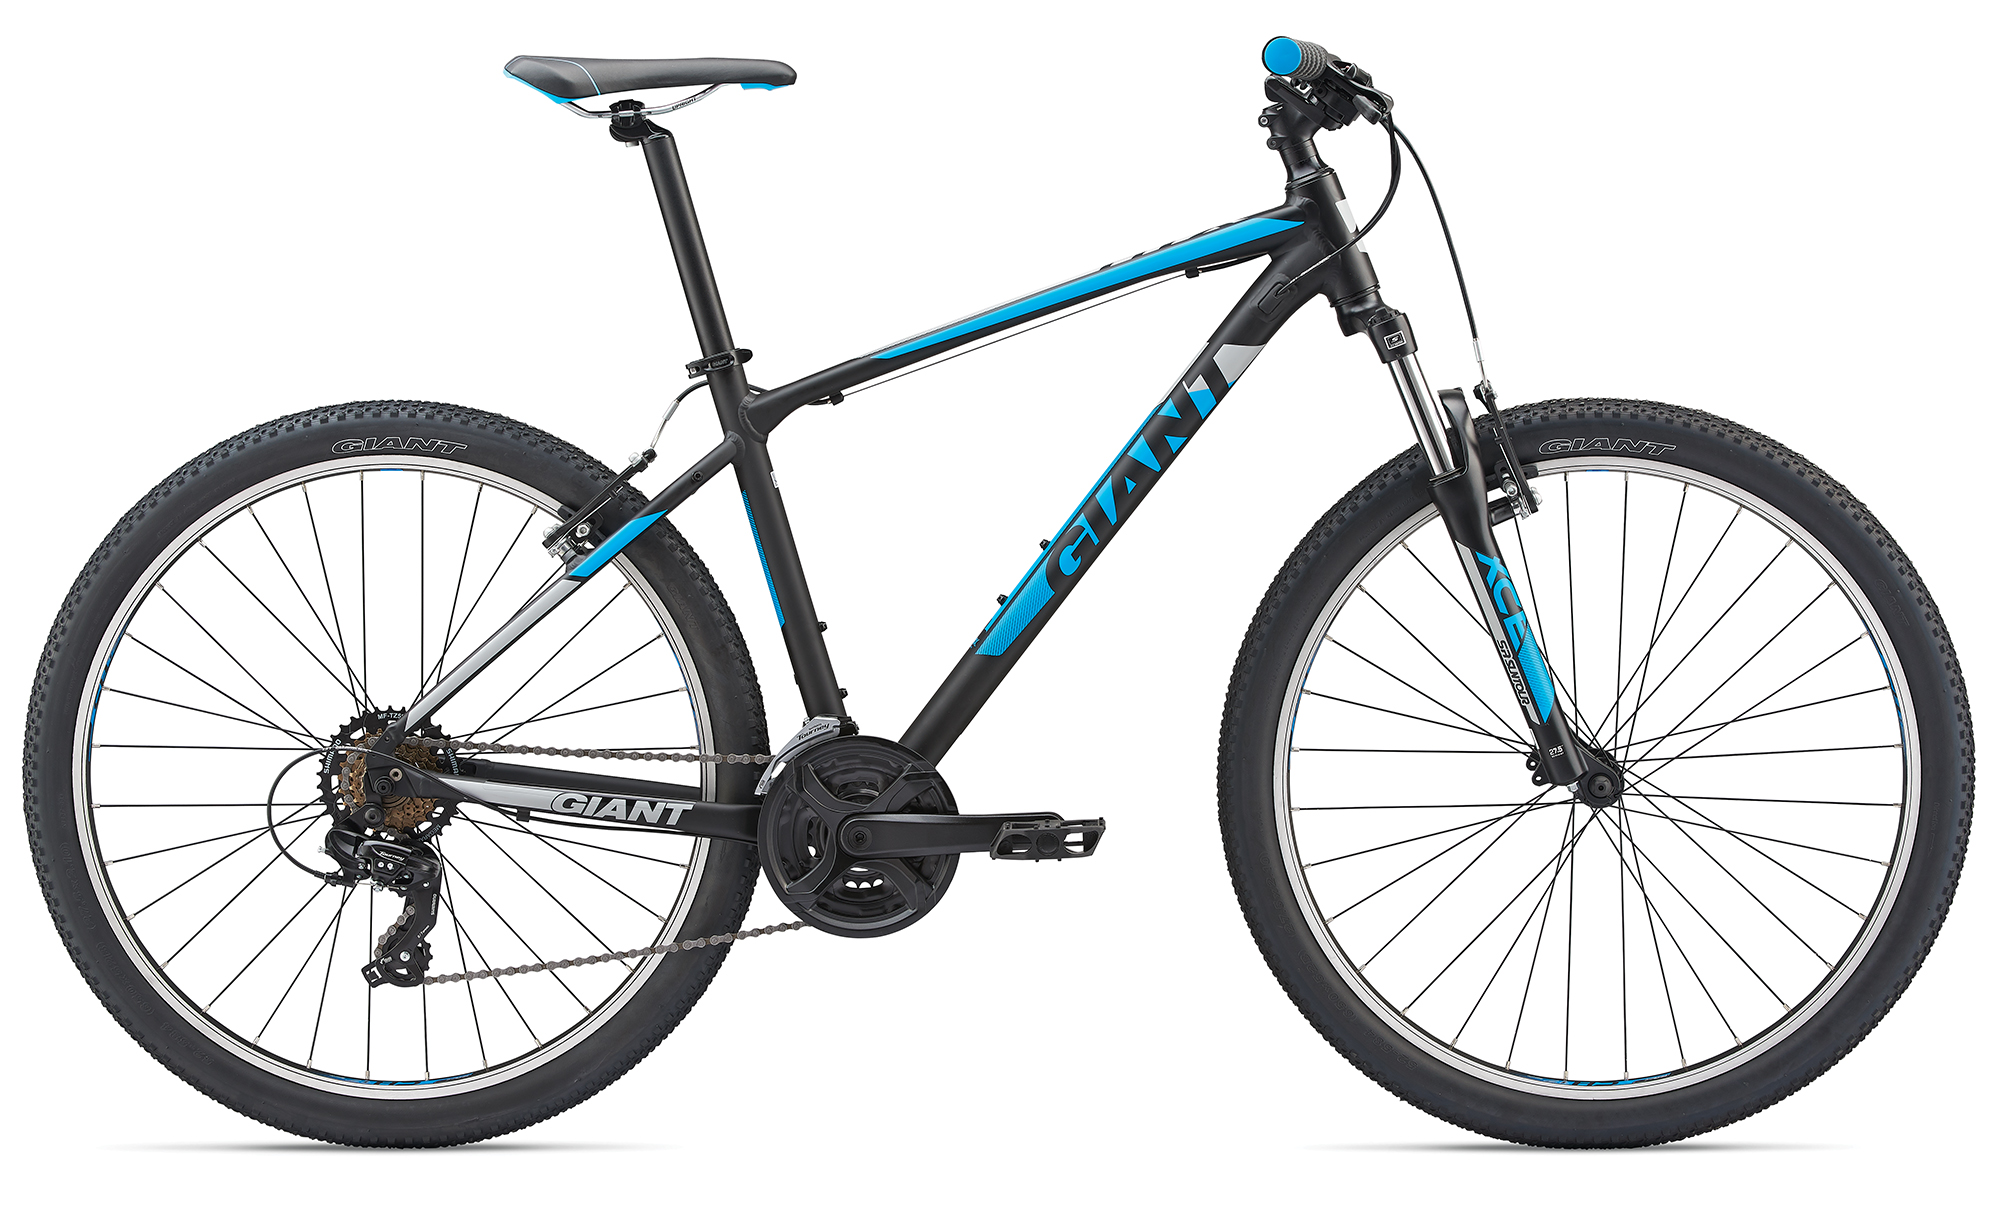 Giant ATX 3 Black-Neonblue Matt 2019